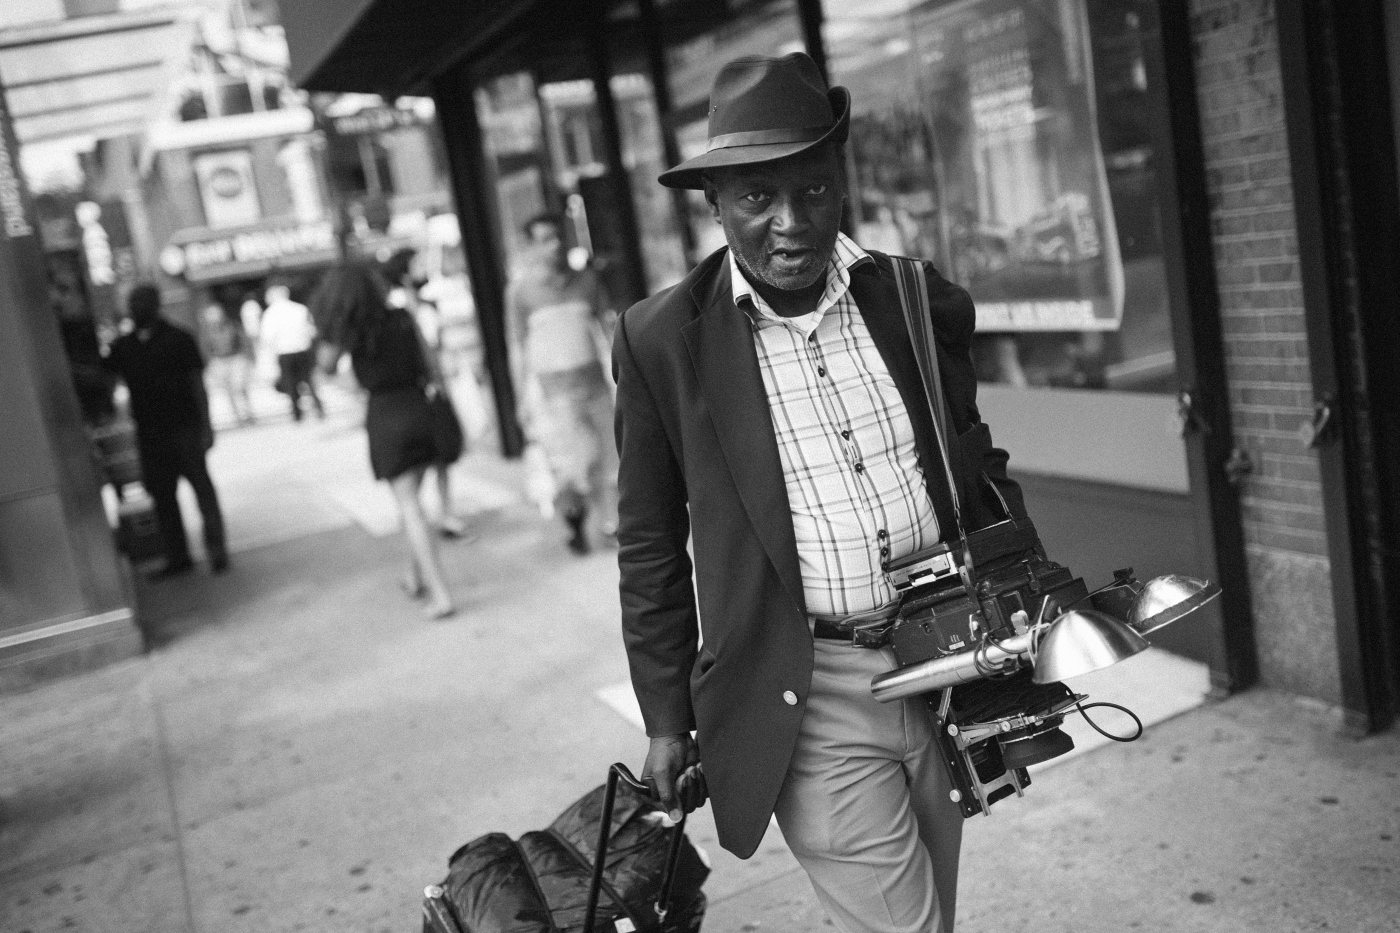 New York photographer